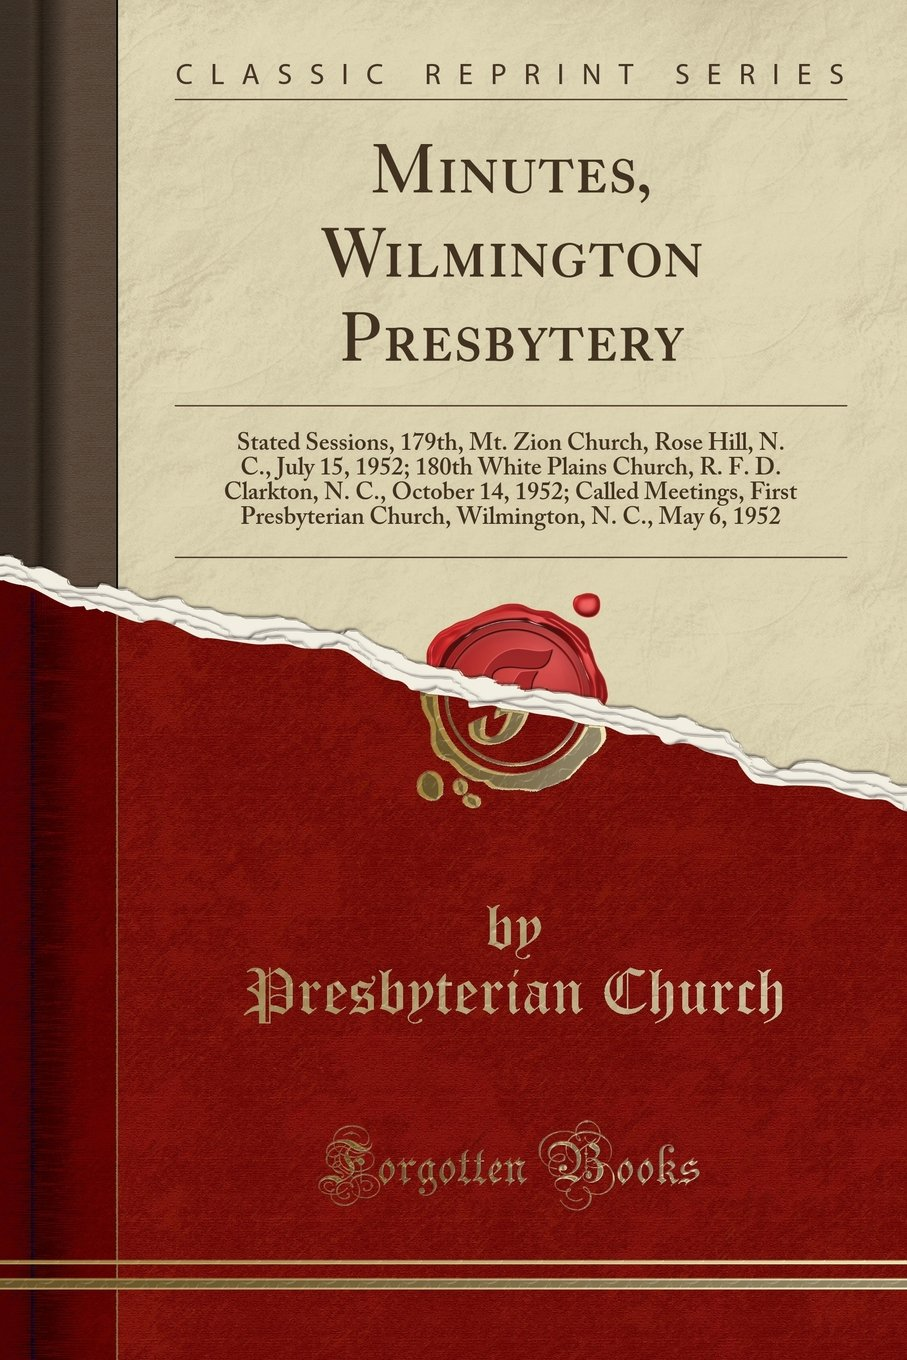 Minutes, Wilmington Presbytery: Stated Sessions, 179th, Mt. Zion Church, Rose Hill, N. C., July 15, 1952; 180th White Plains Church, R. F. D. ... Church, Wilmington, N. C., May 6, 1952 ebook